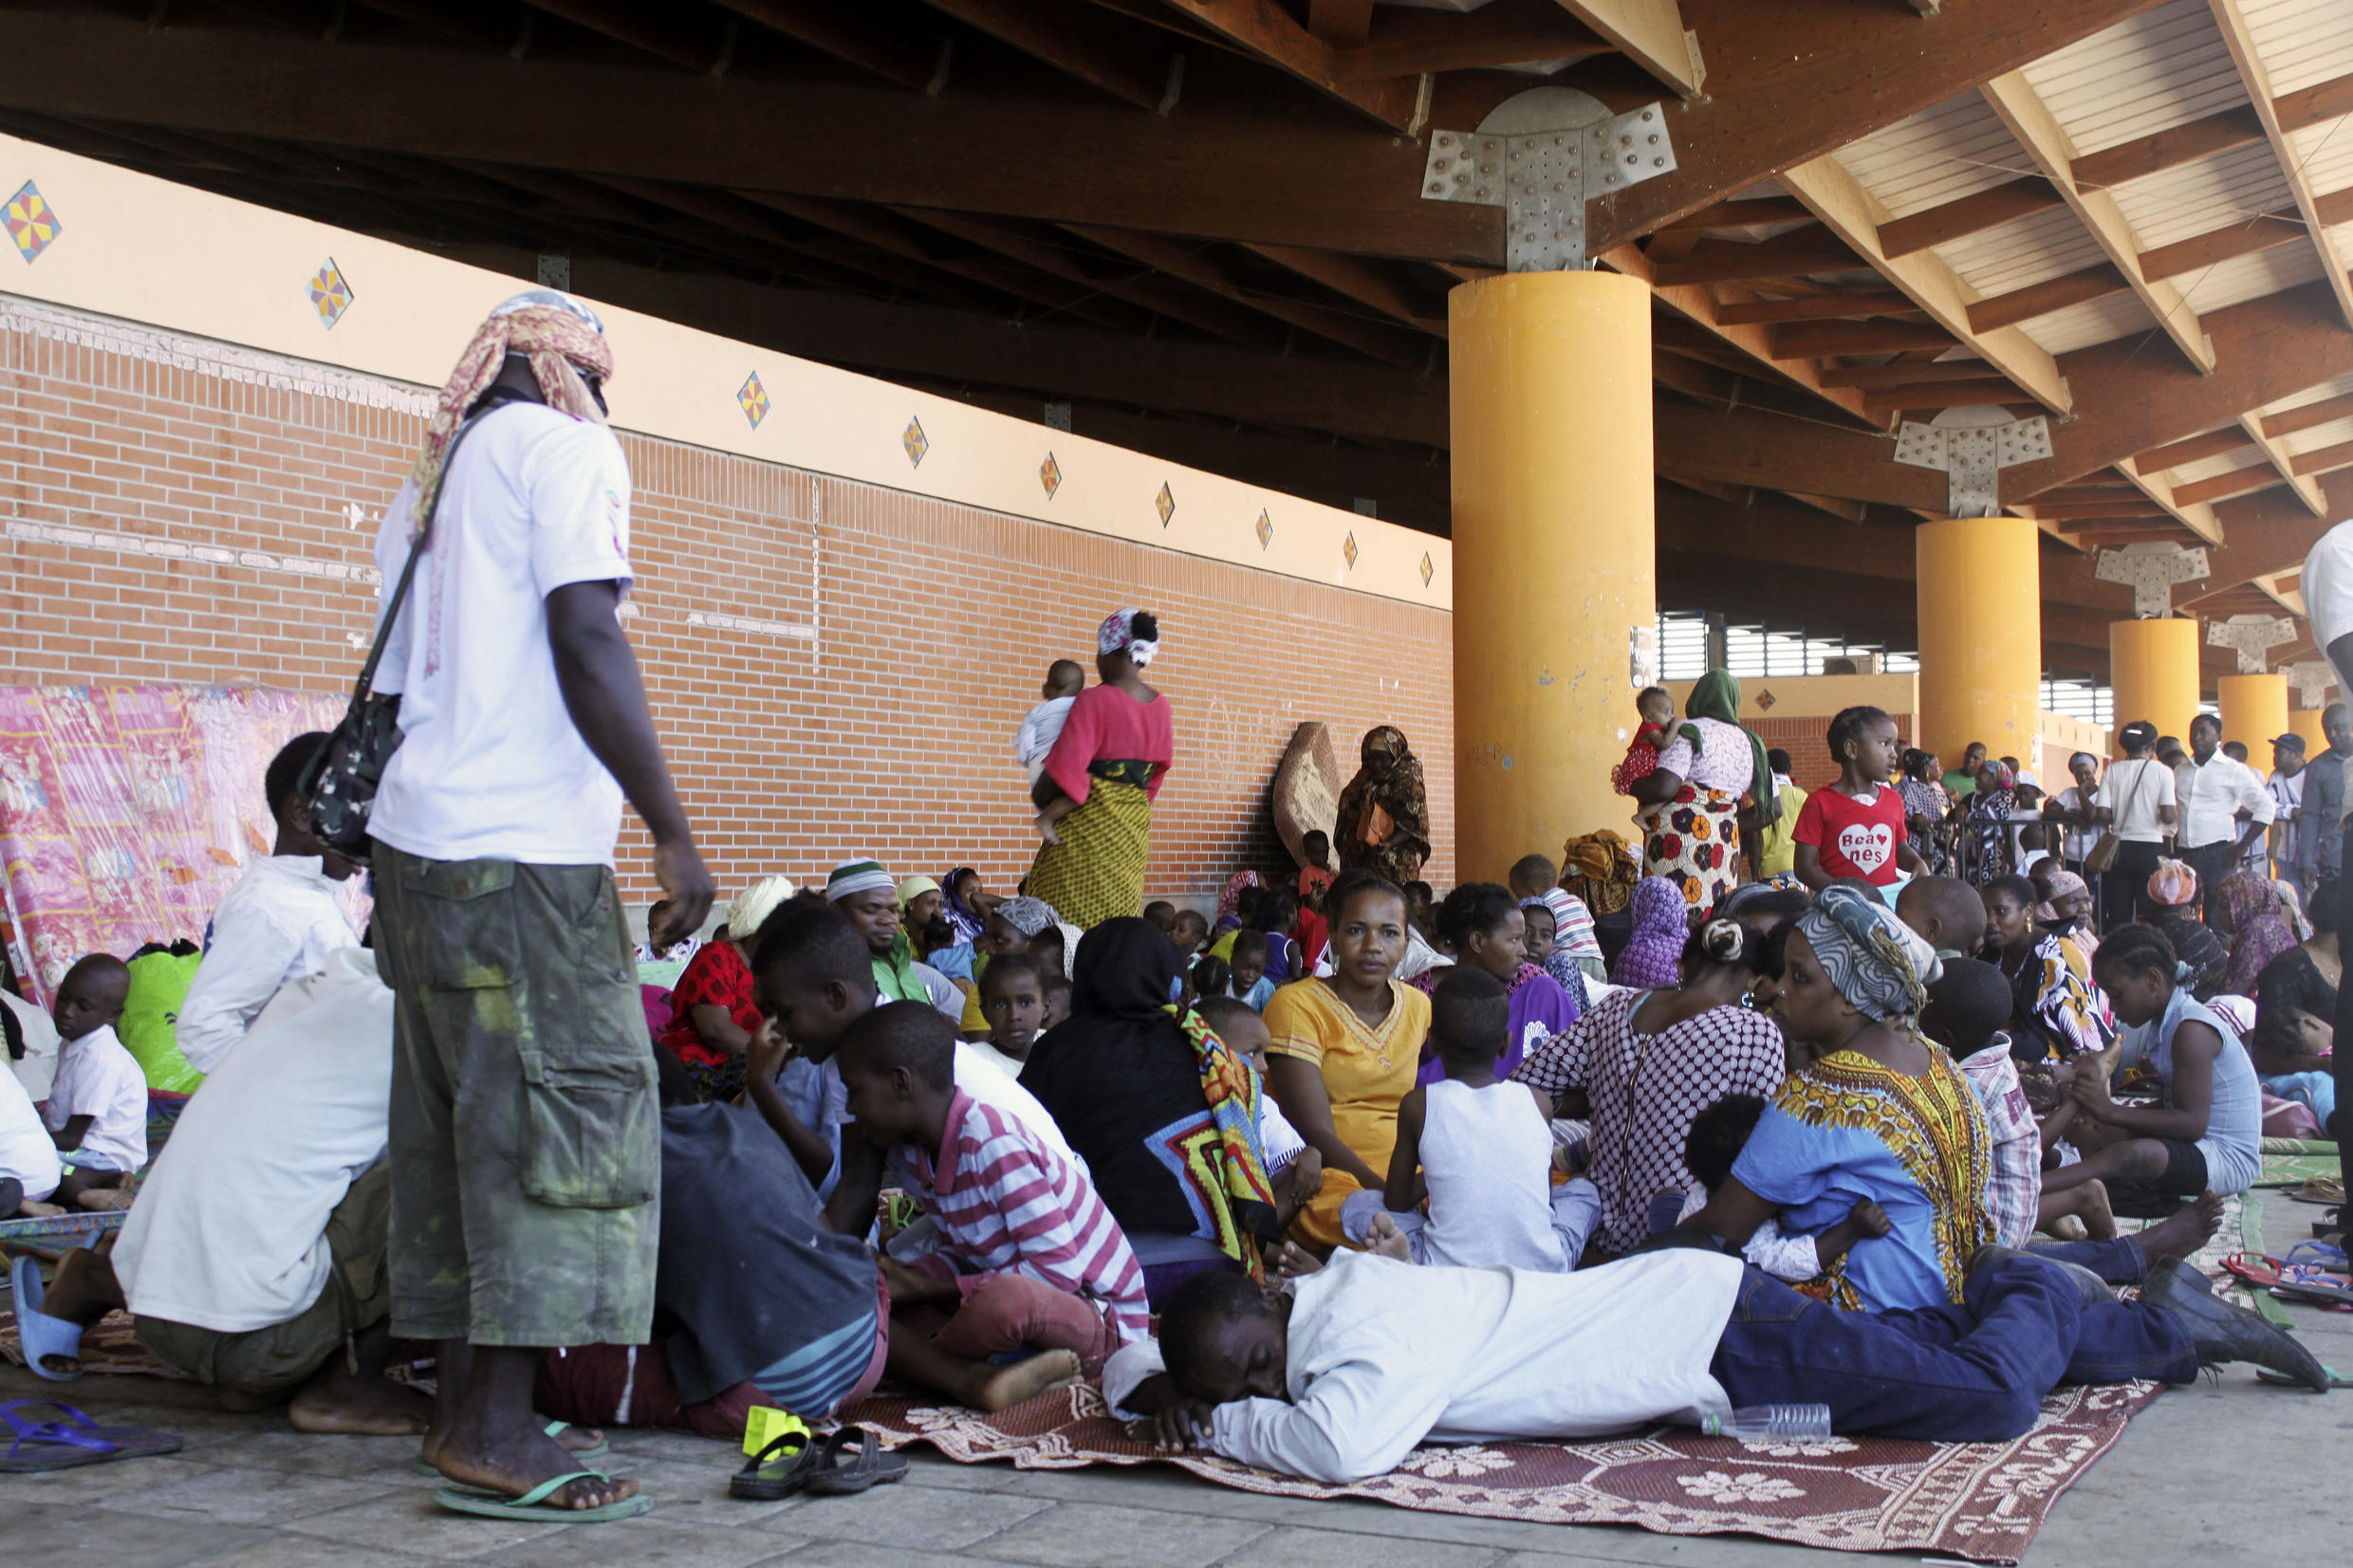 Some 500 people from Comoros who had been thrown out of their homes in Mayotte by anti-migrant groups spent the night in Mamoudzou's Place de la République on 17 May, 2016